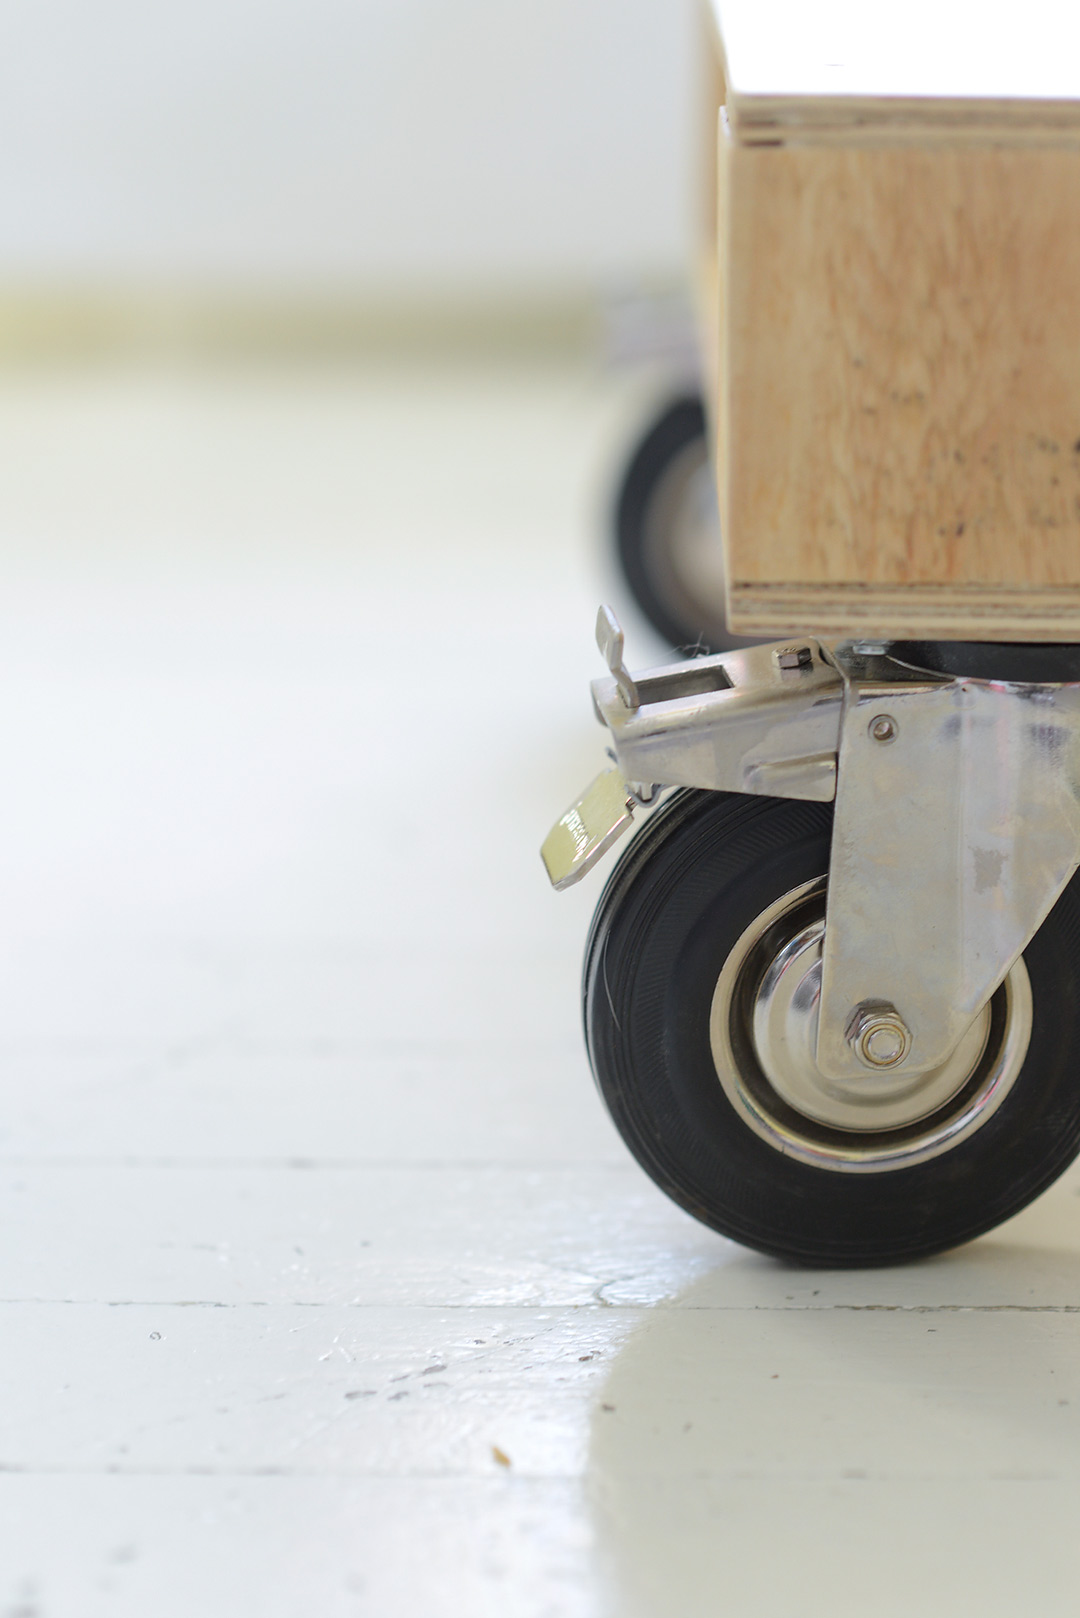 Pallet on casters